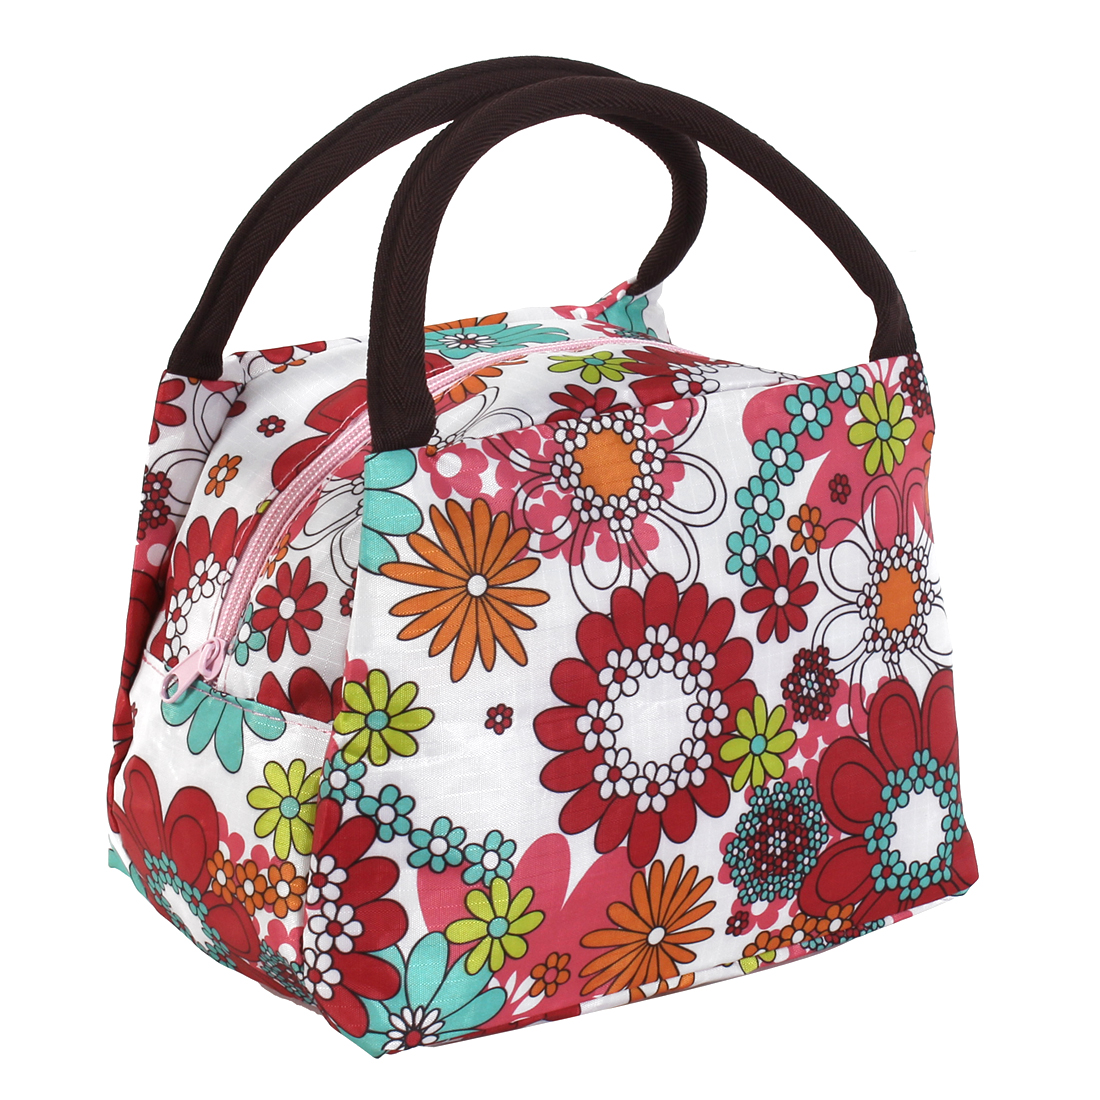 Lady Flower Pattern Handheld Cosmetic Bag Holder Case Colorful